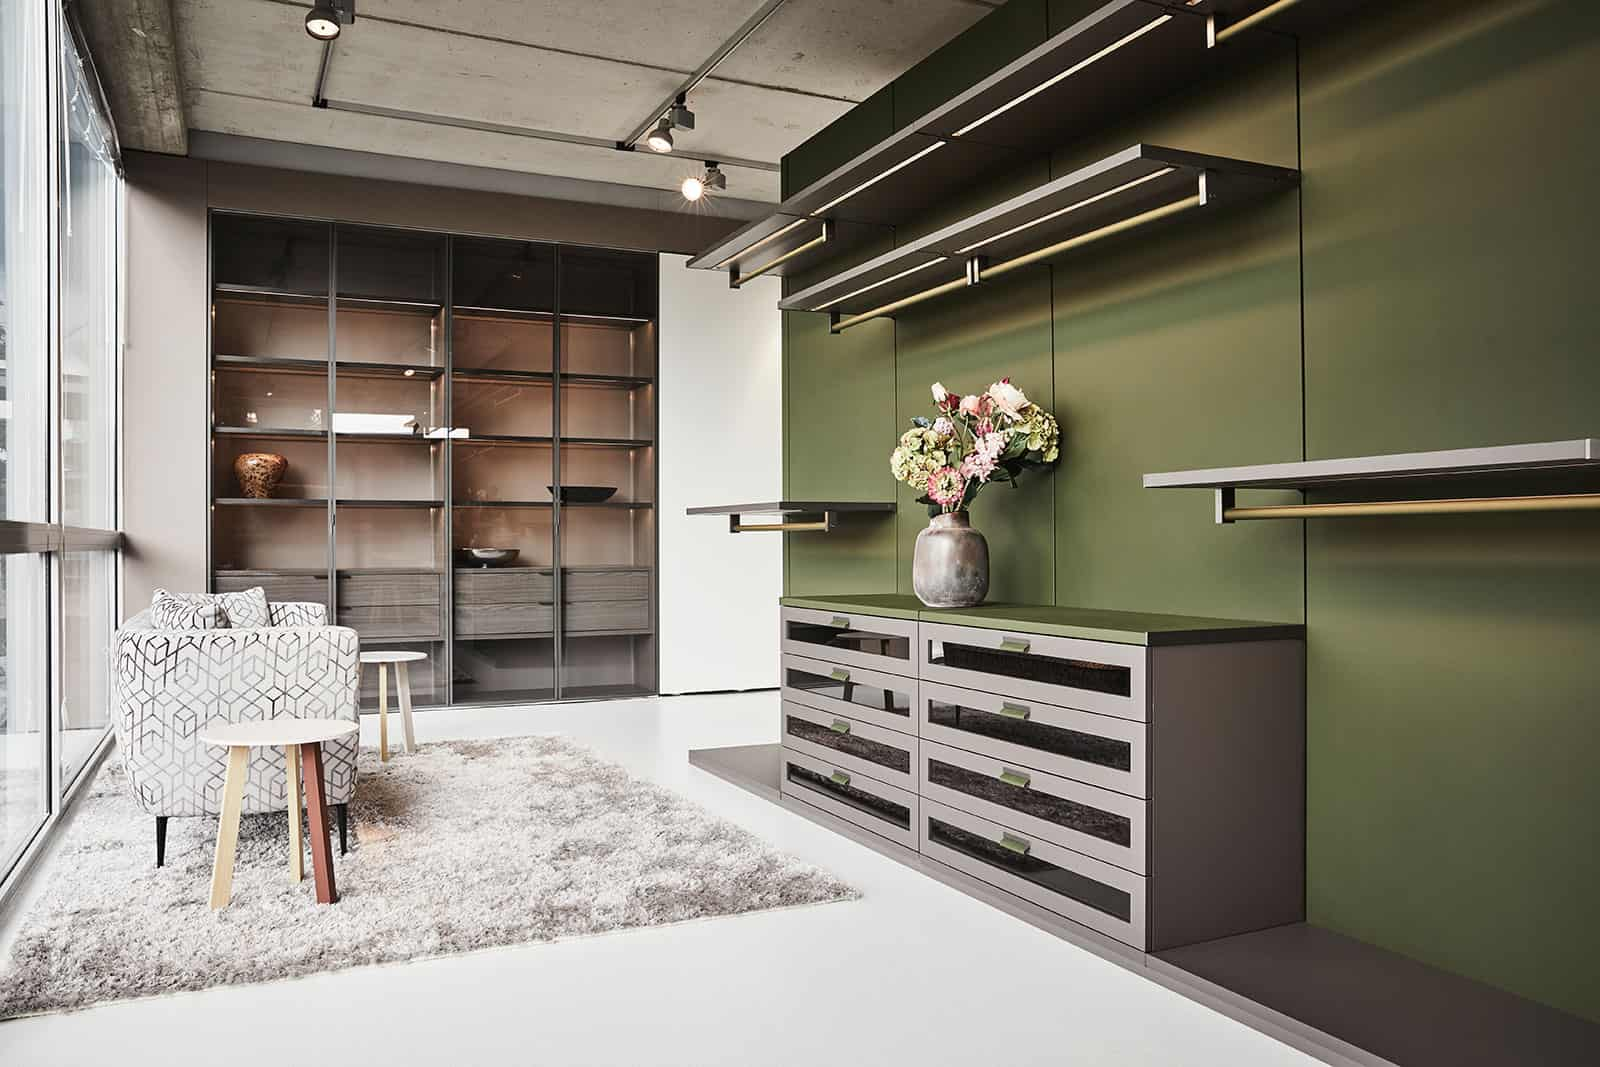 custom luxury walk-in closet with a green accent wall and warm wood touches by schmalenbach designed by eggersmann